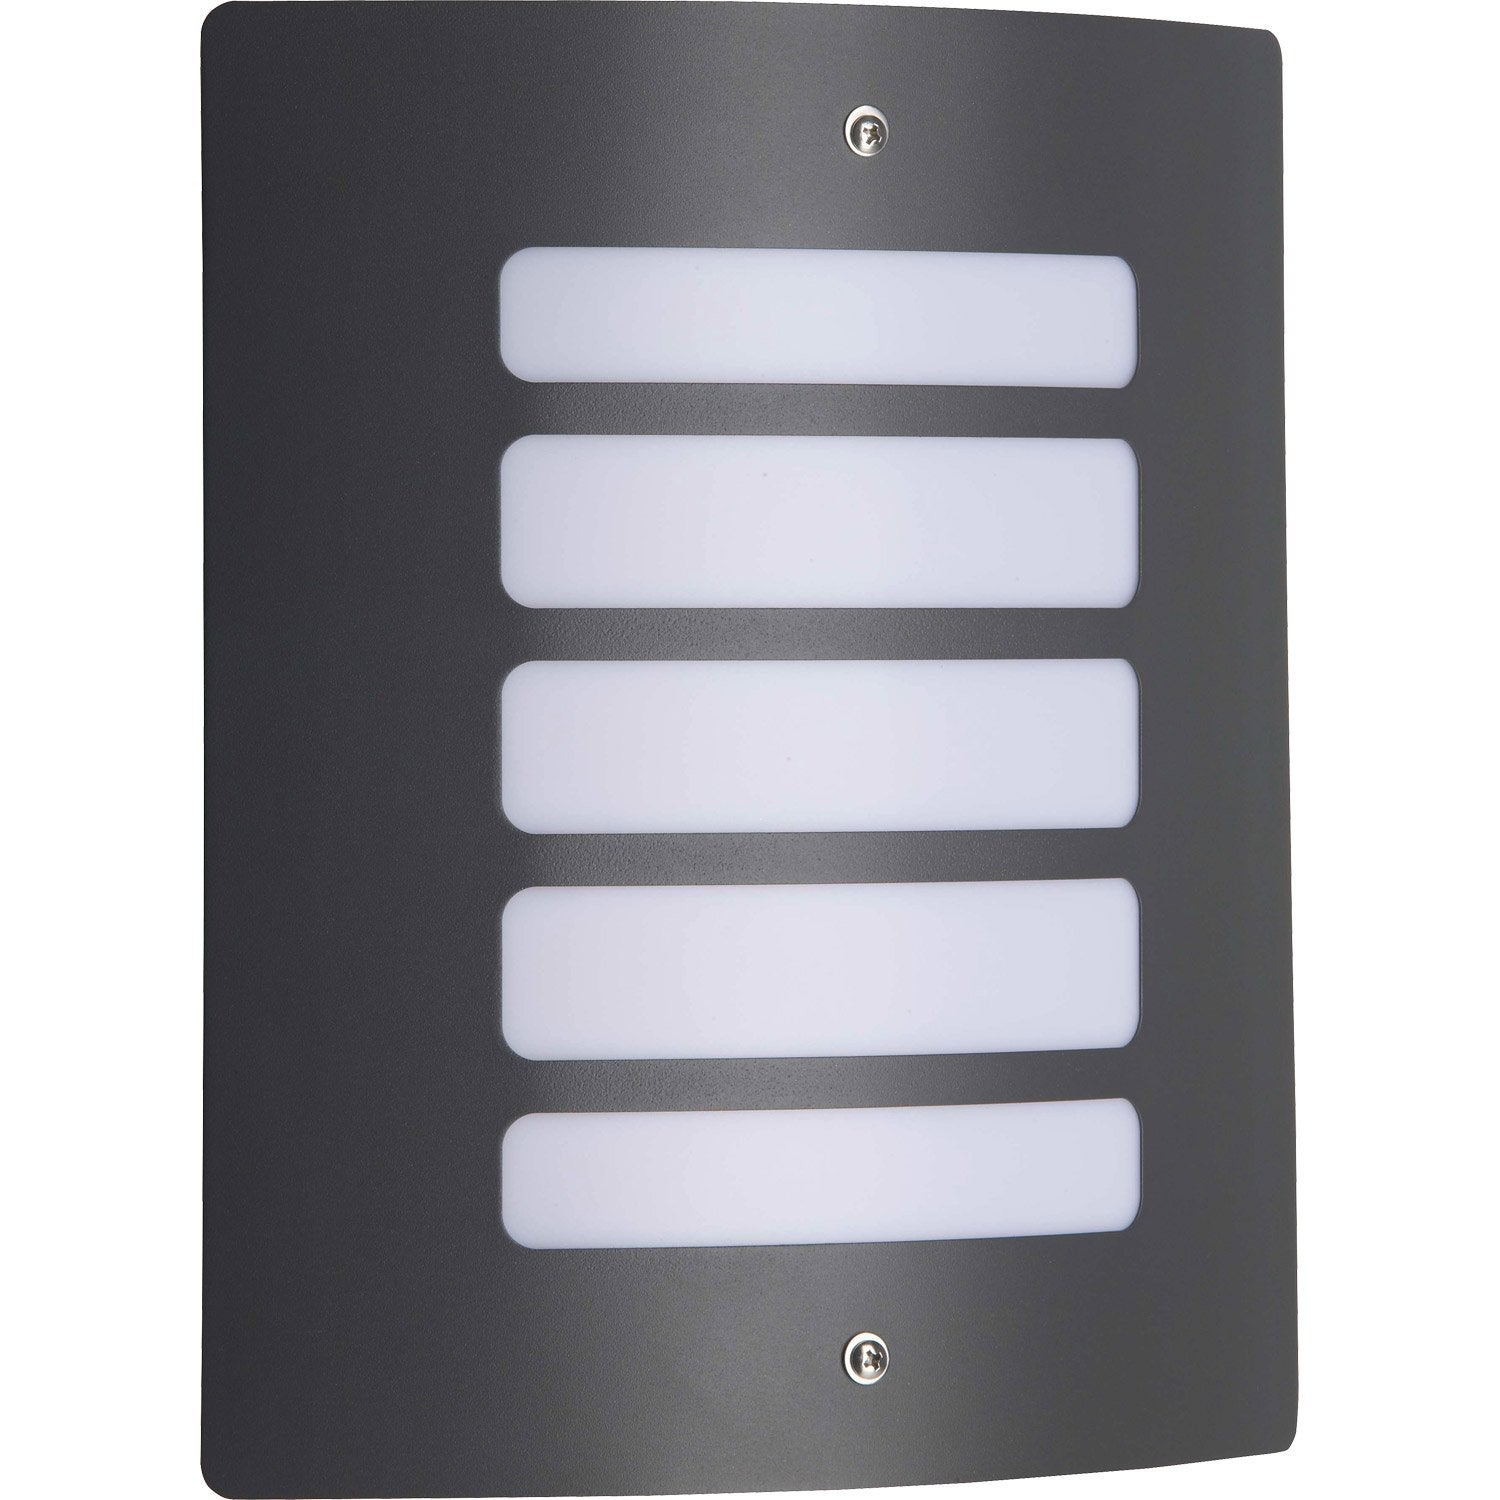 Demi applique ext rieure todd e27 60 w anthracite for Luminaire exterieur gris anthracite